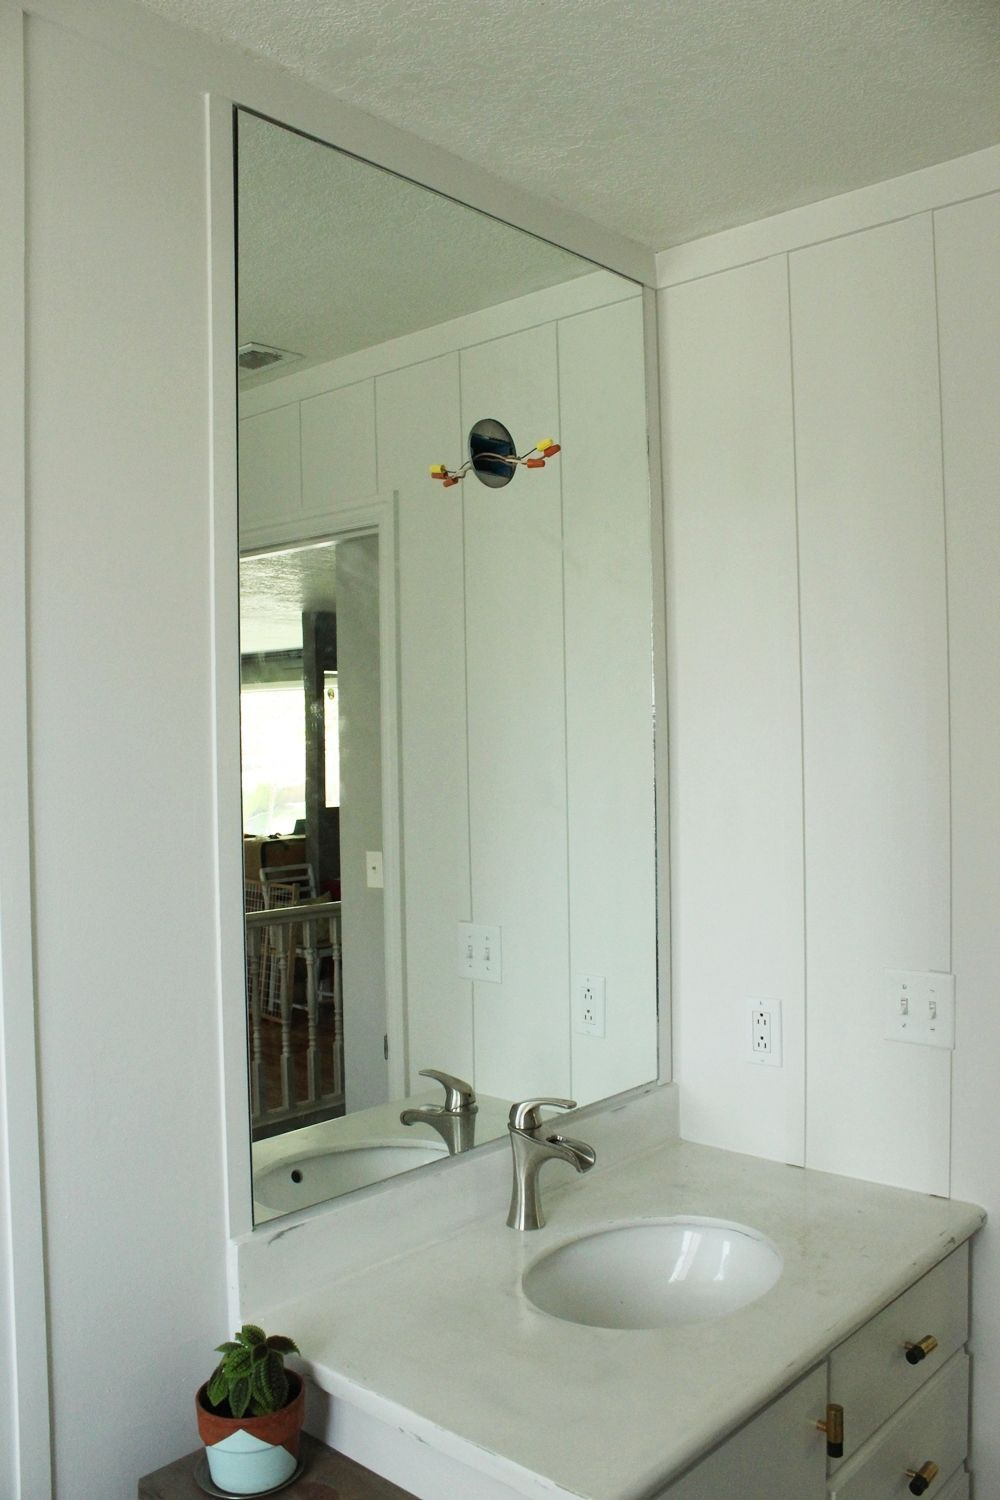 Bathroom Mirror Diy how to professionally install a bathroom mirror